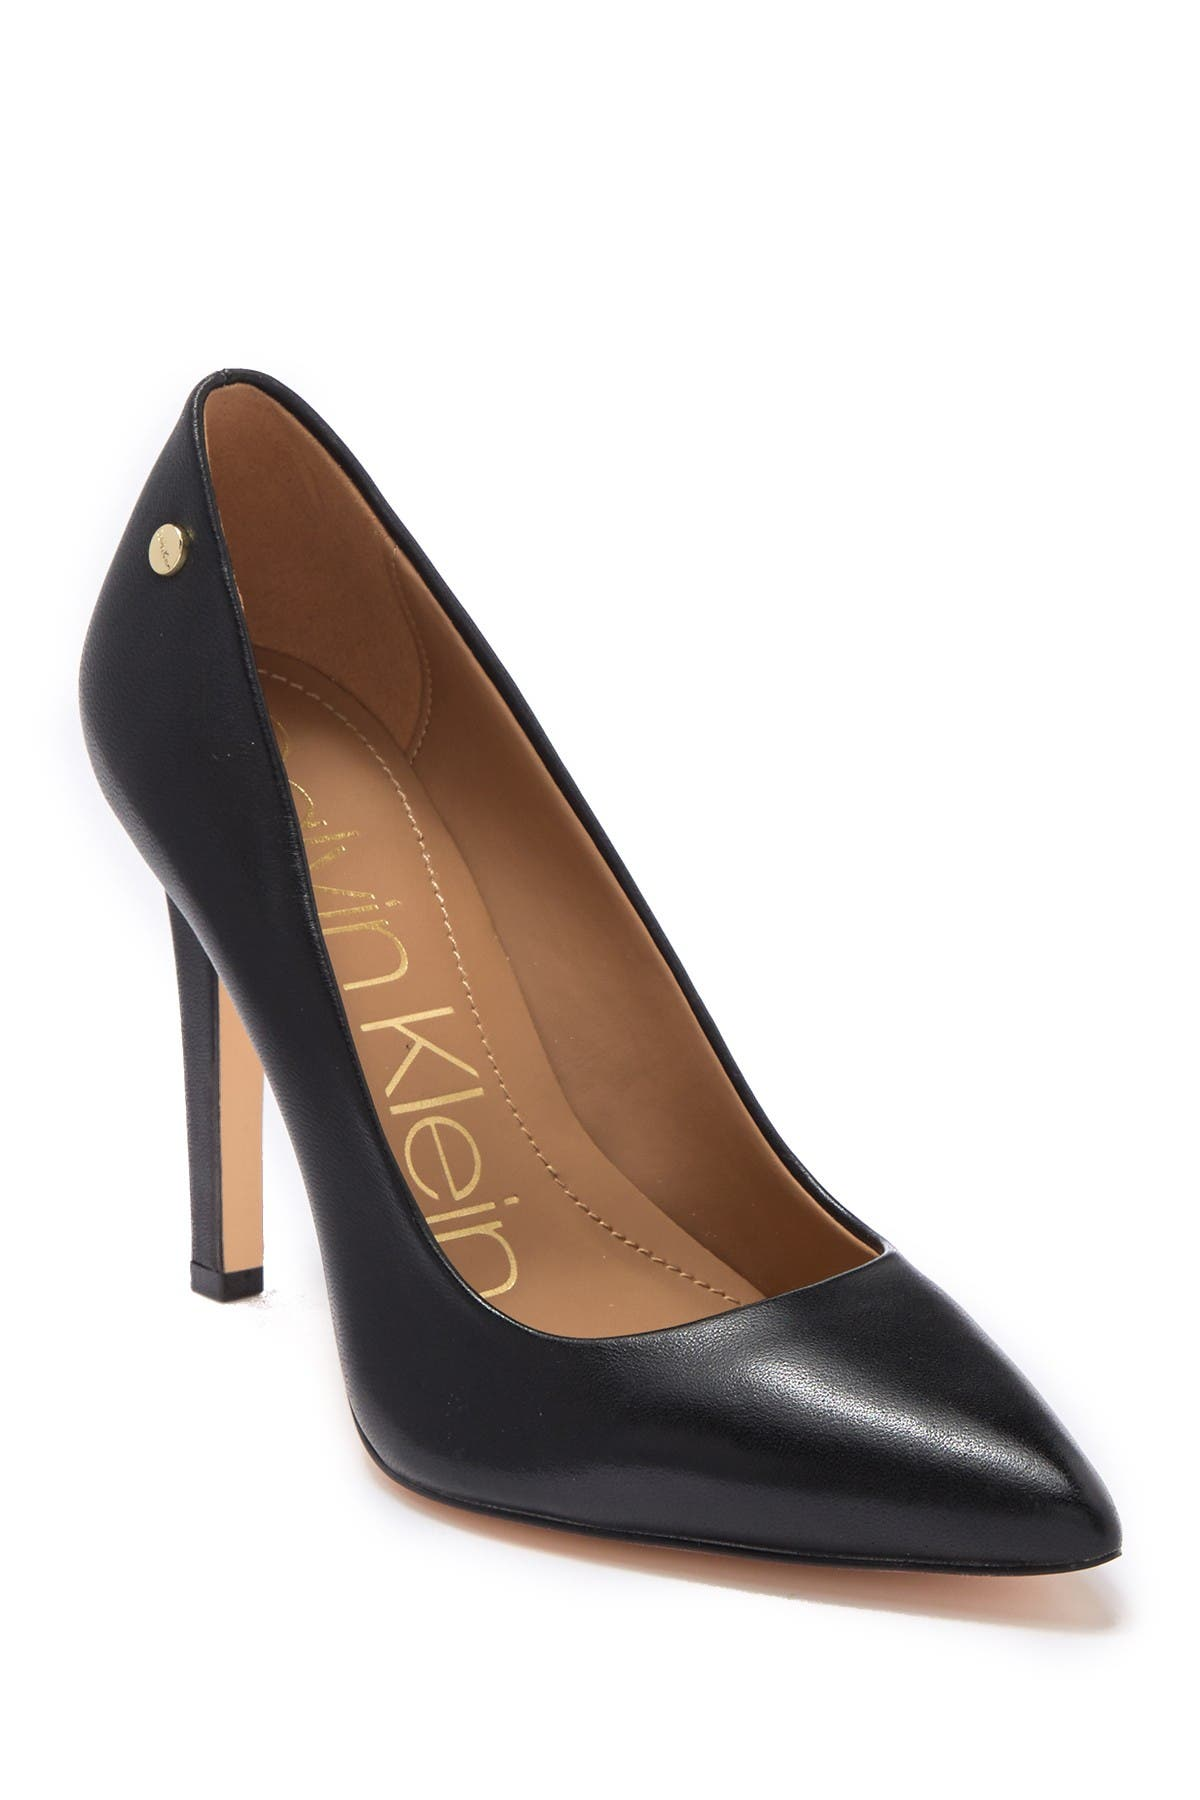 Brady Leather Pointed Toe Pump